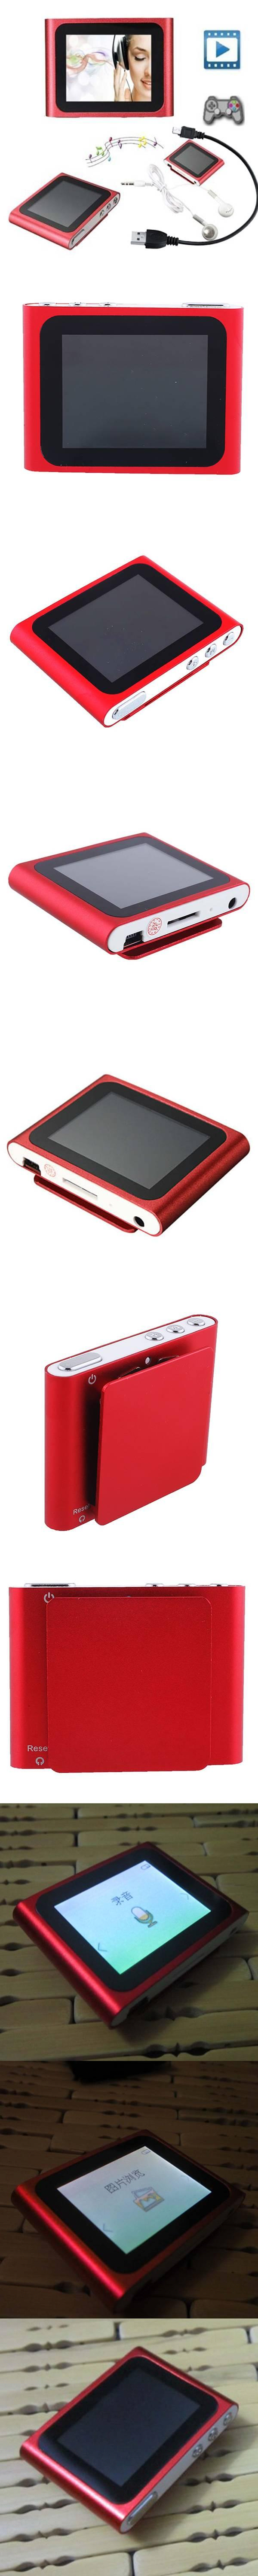 portable 1 8 inch lcd screen display mp4 player 6th generation music